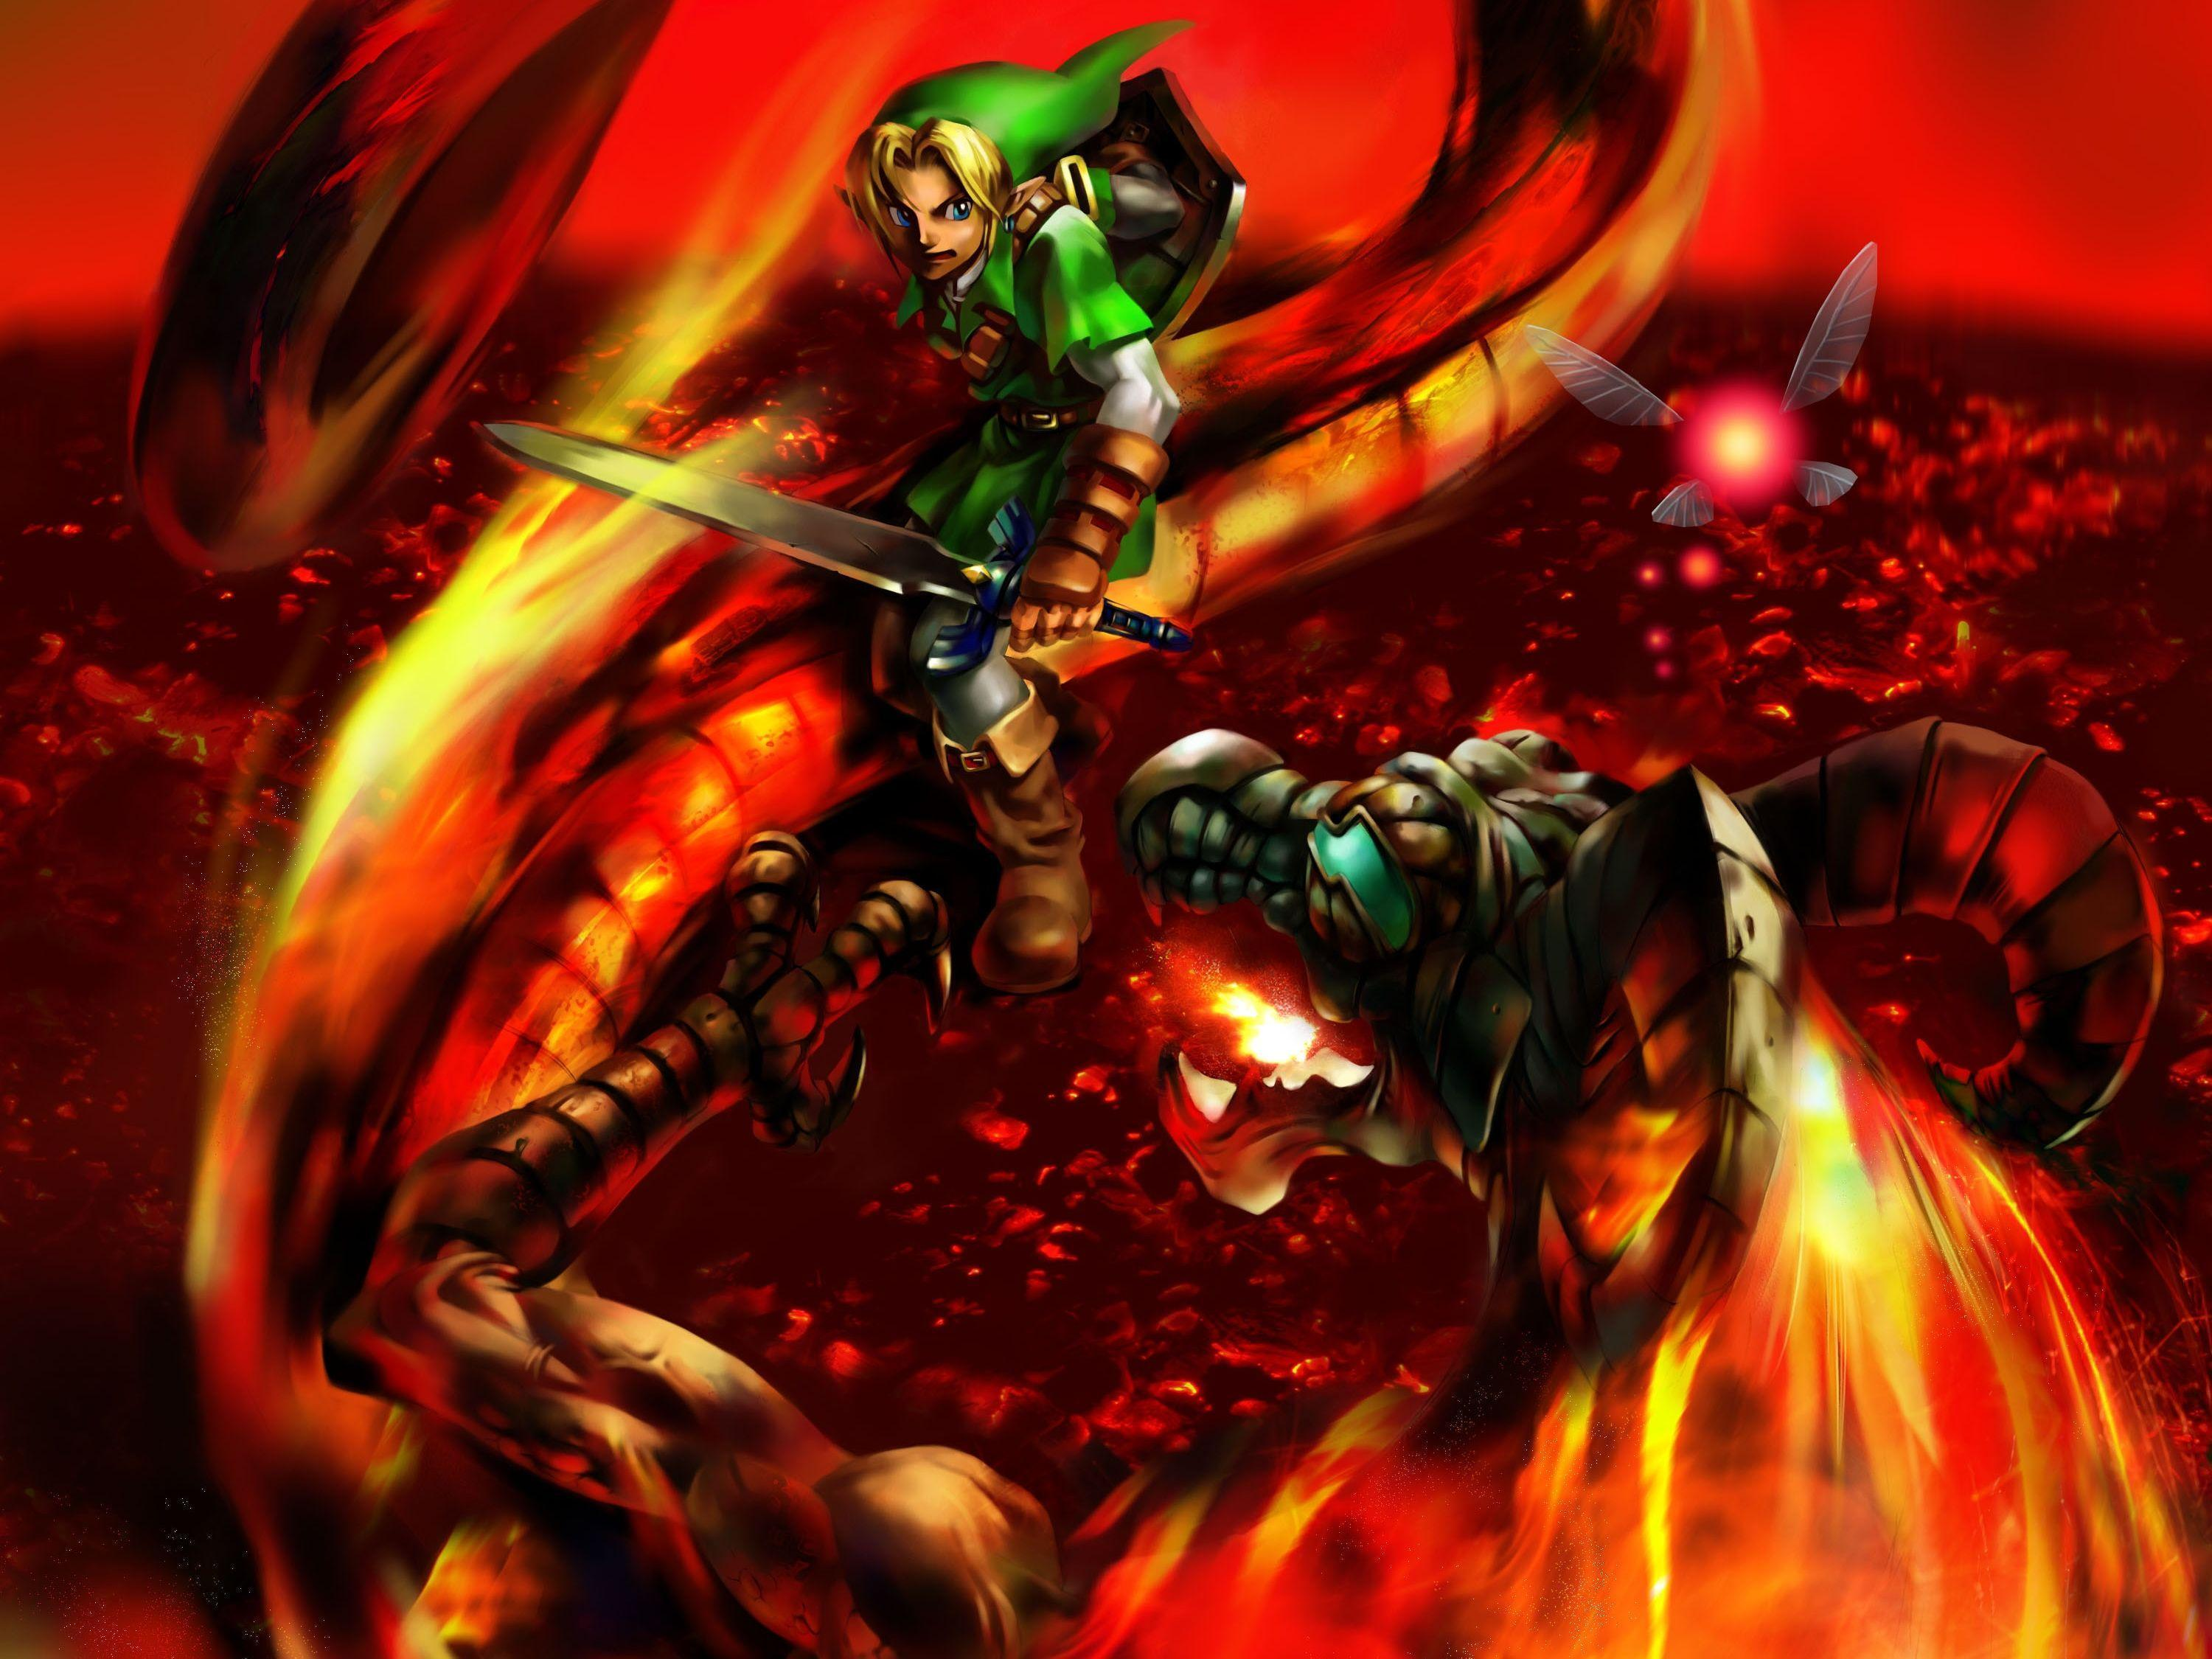 95 The Legend Of Zelda: Ocarina Of Time HD Wallpapers